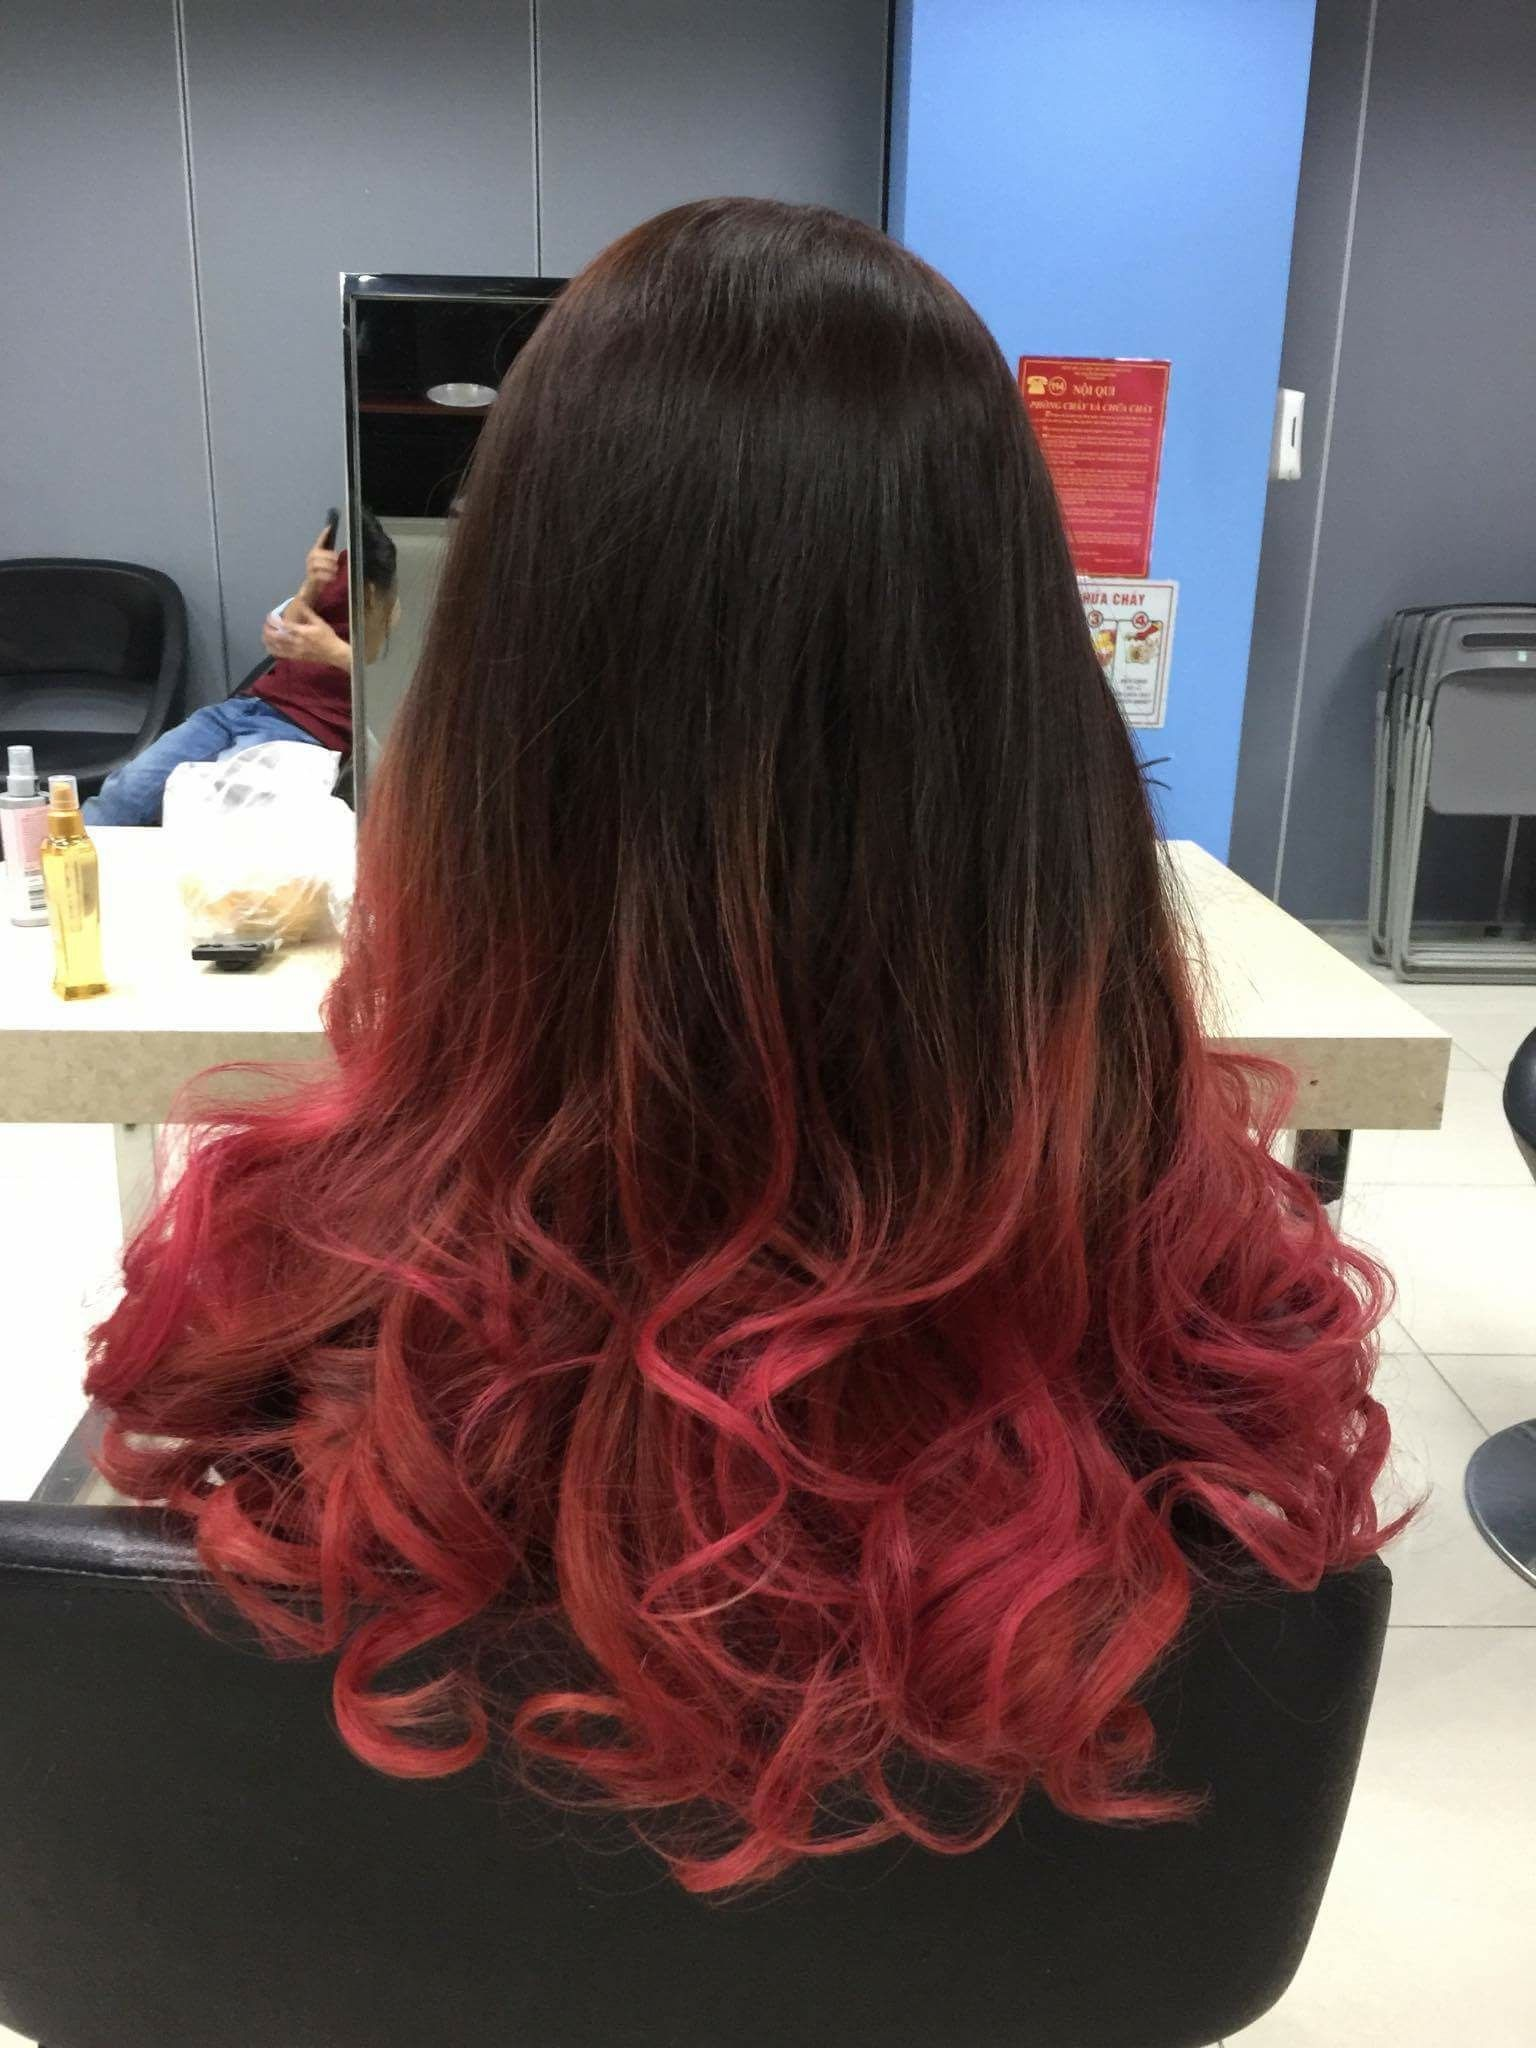 Red marenta ombre hair trends pinterest ombre hair trends and